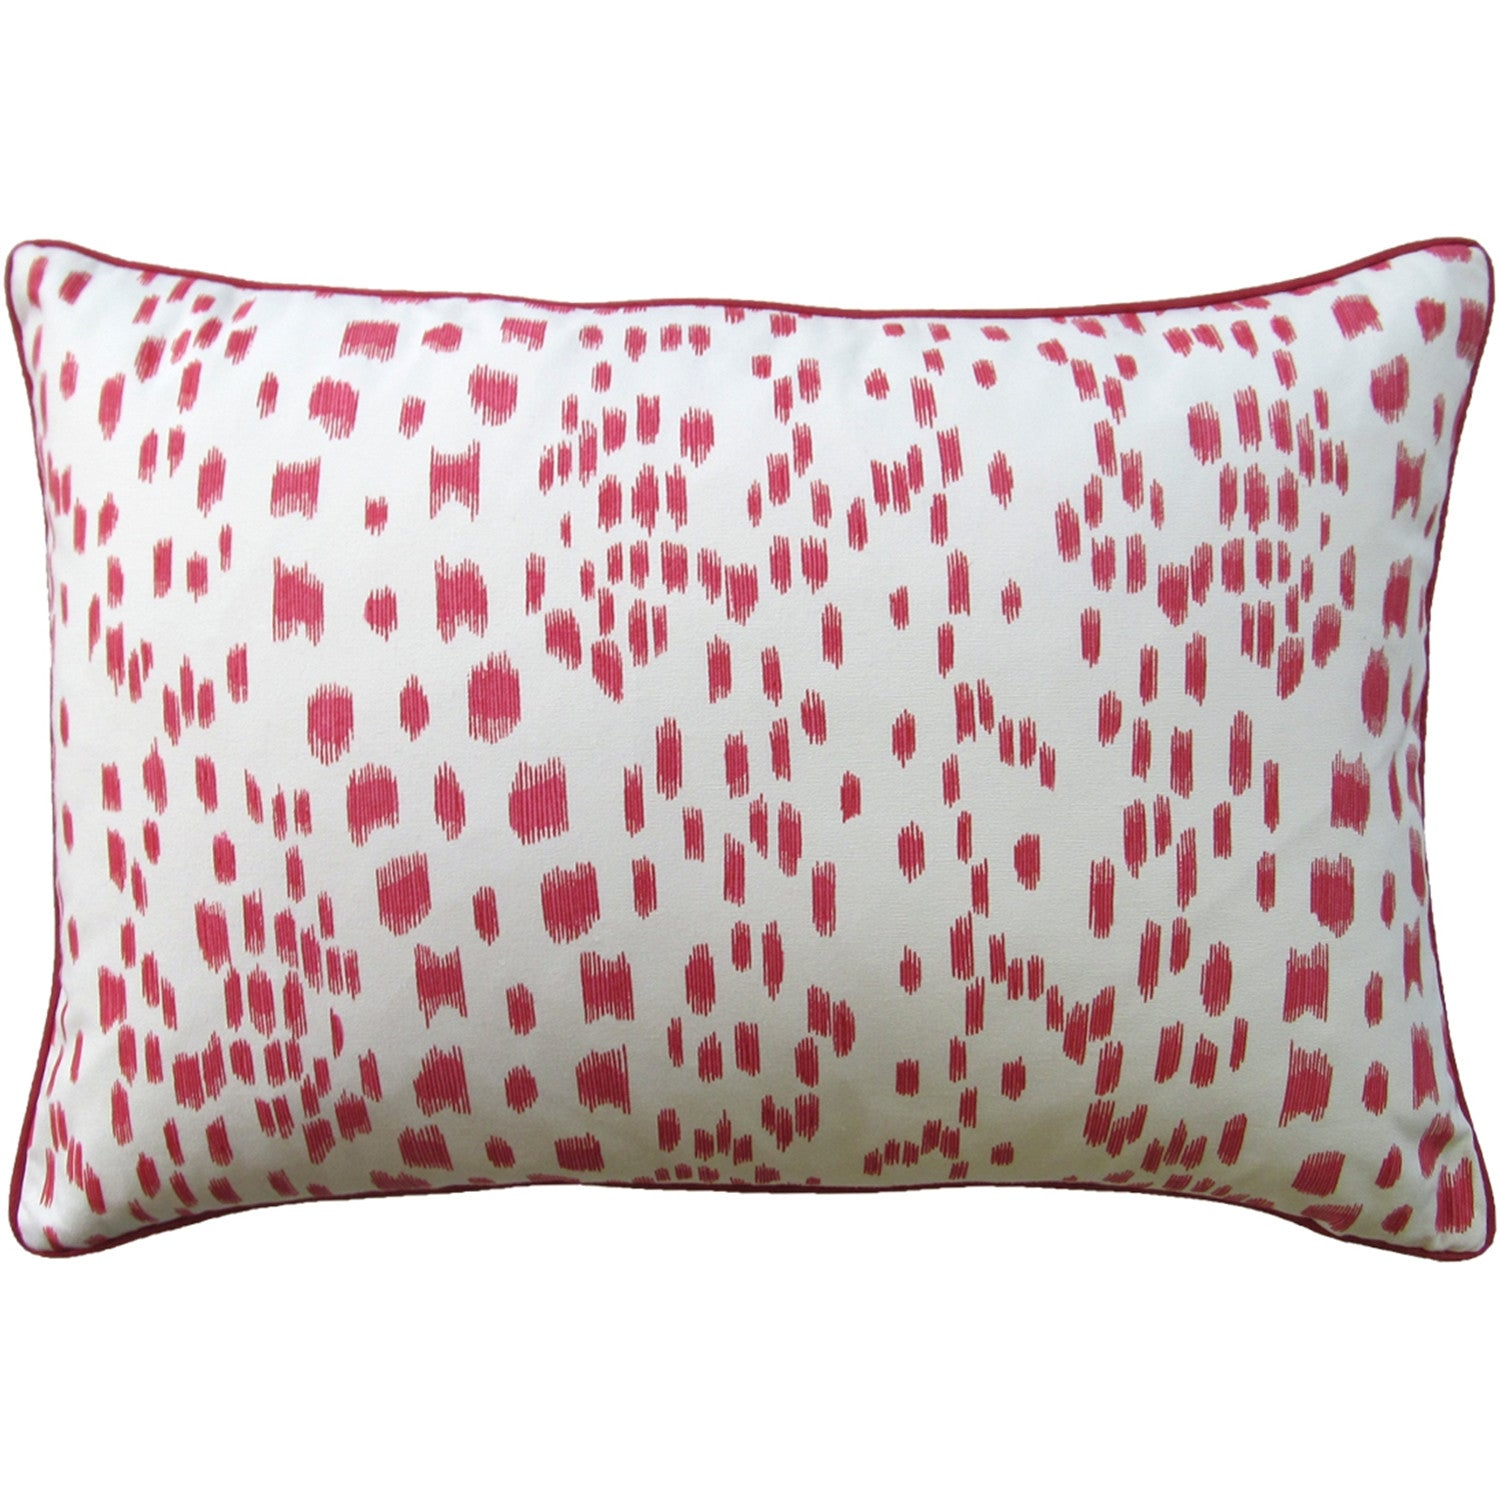 Ryan Studio Les Touches Pillow in Pink